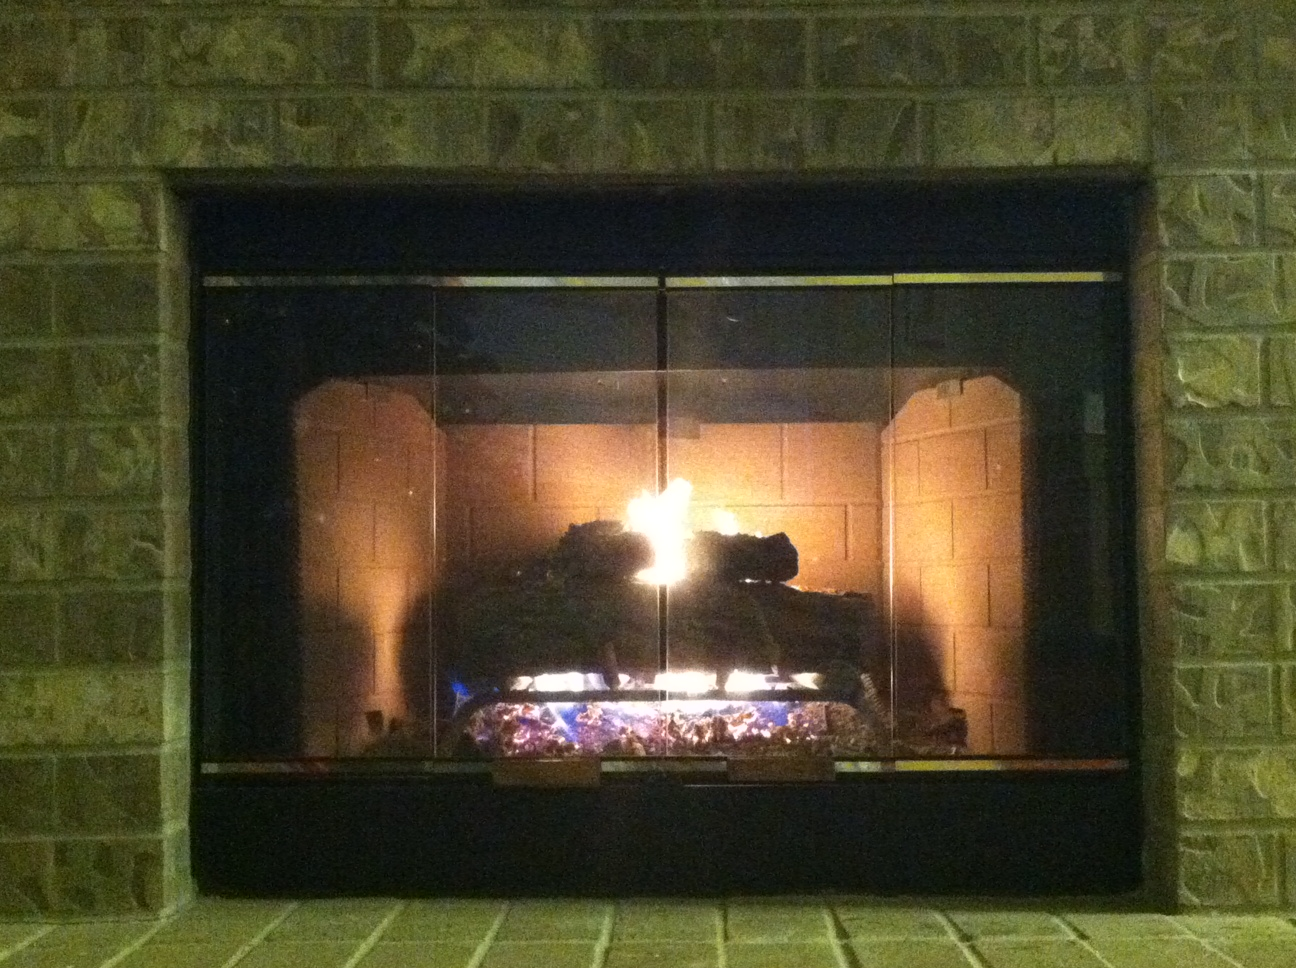 A ventless combustion fireplace has no chimney; it draws combustion air from and releases combustion byproducts to the room in which it is located